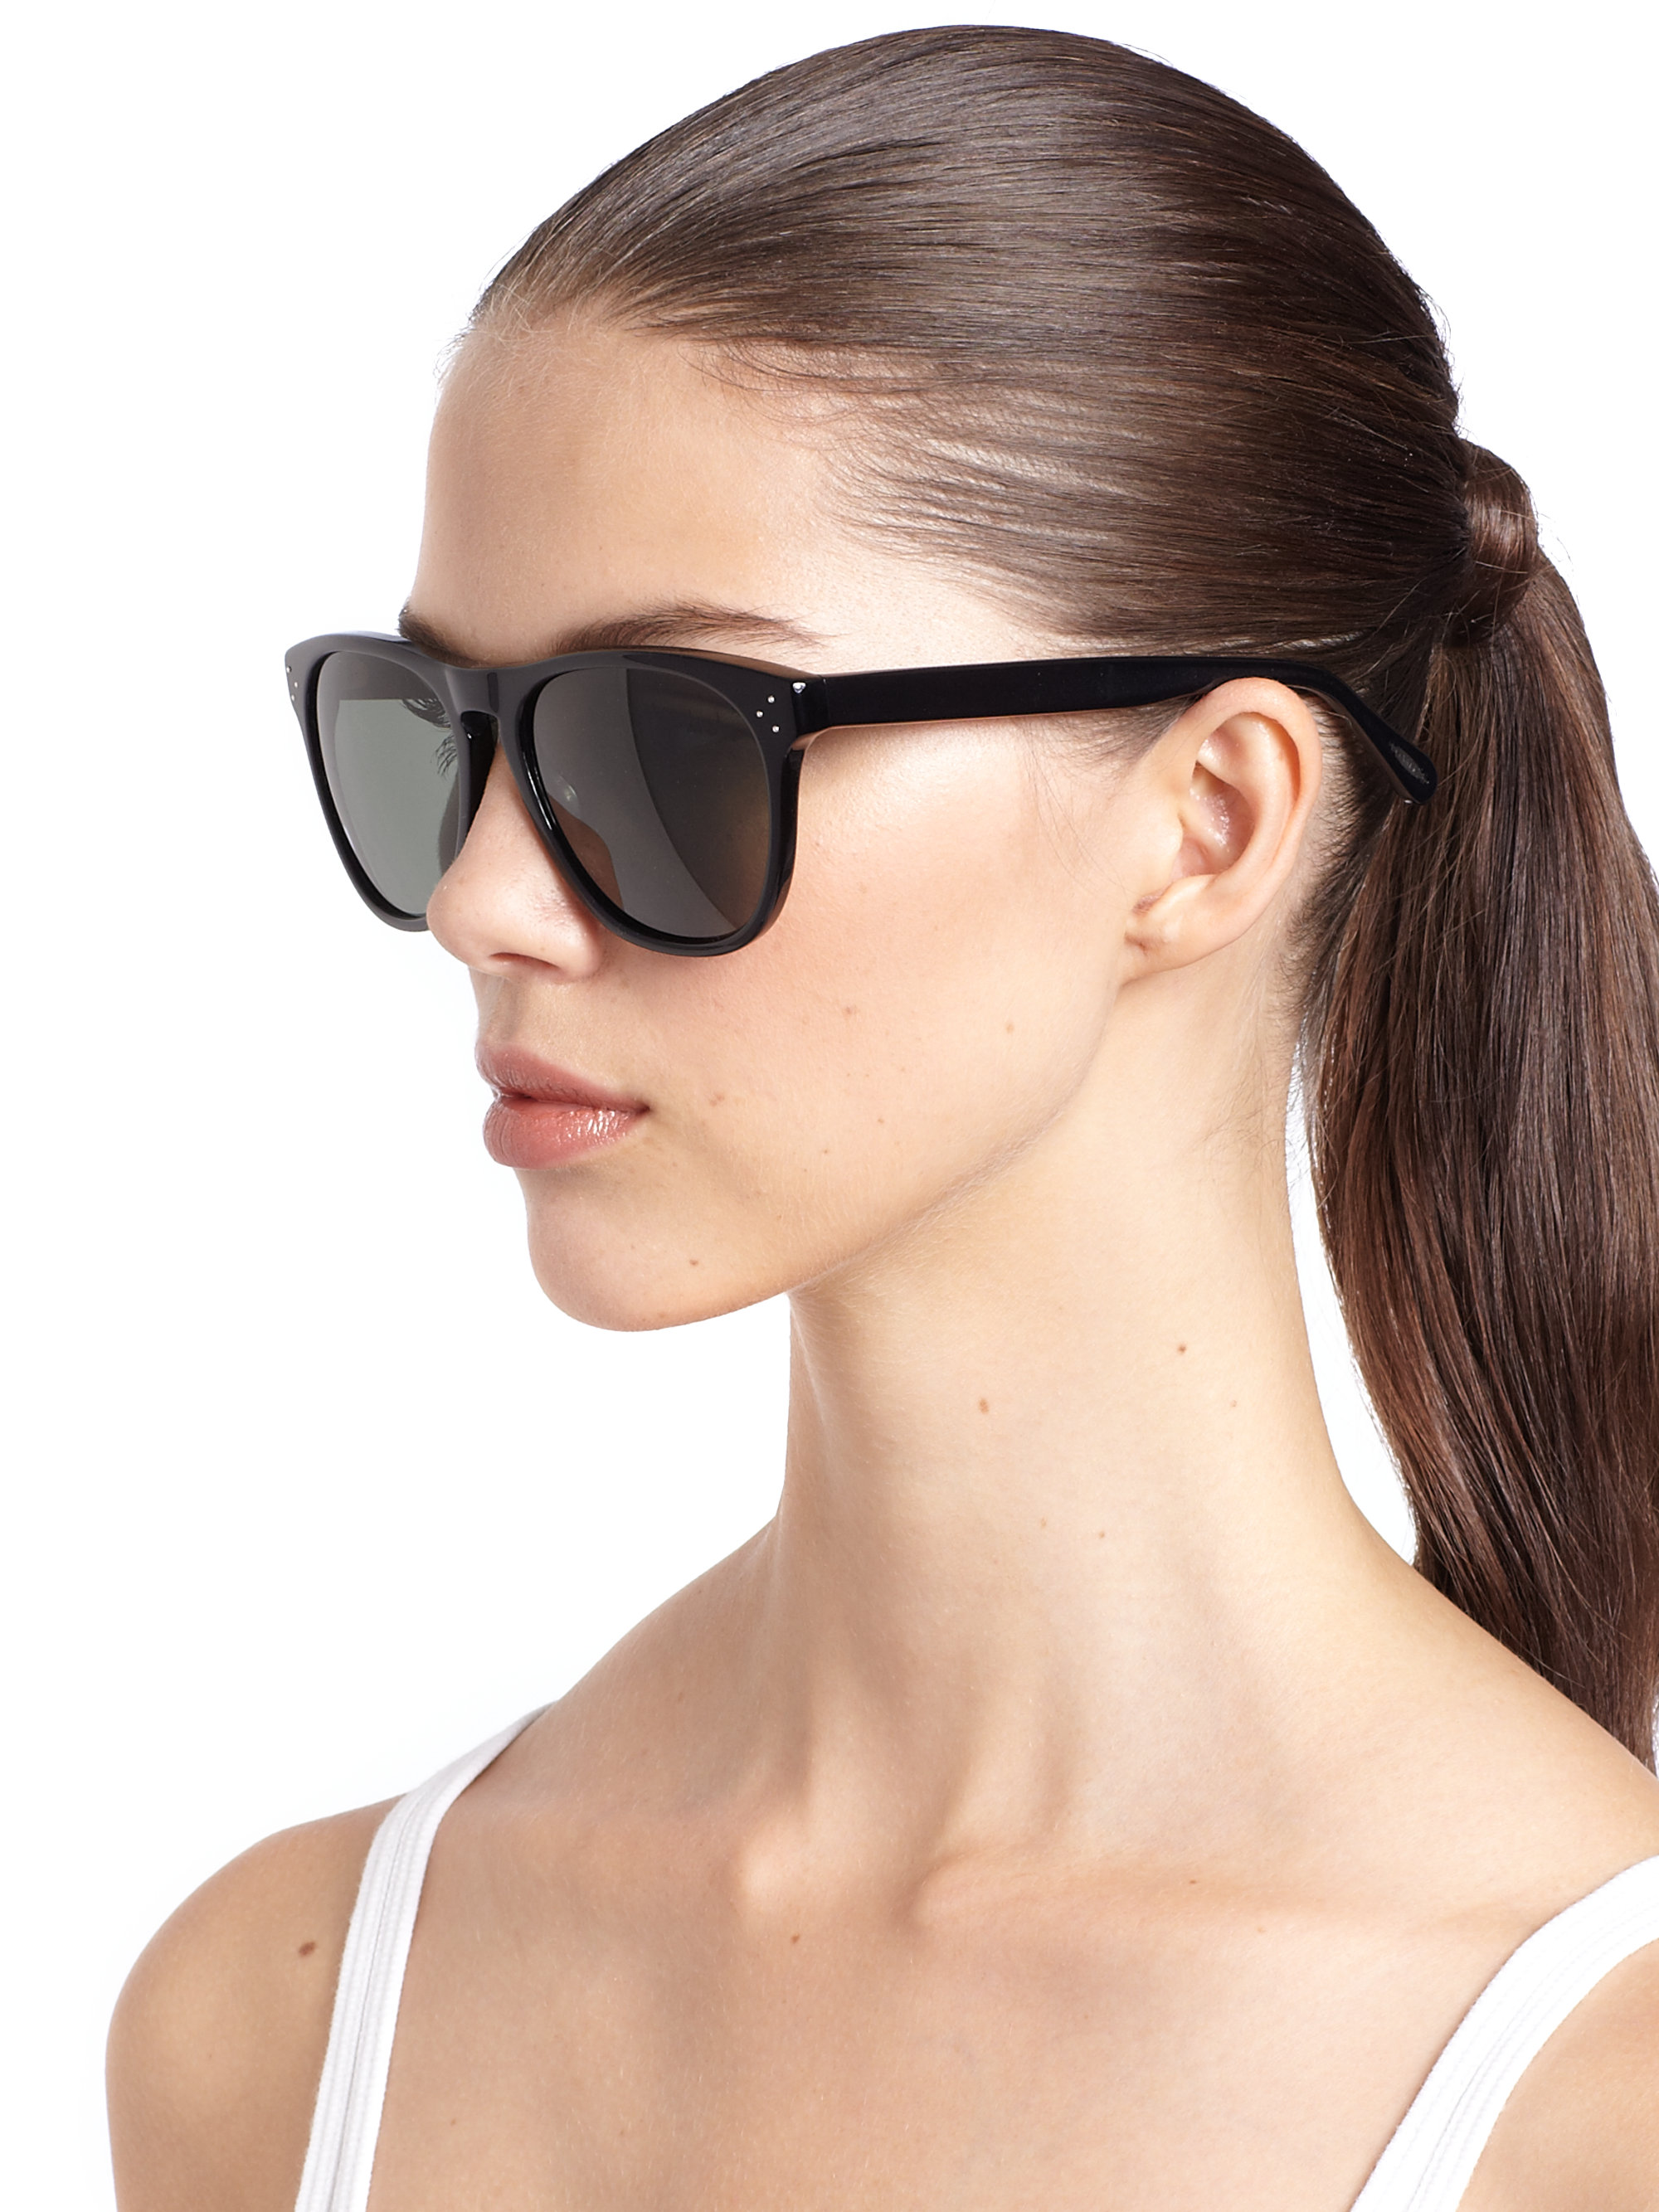 07cd1111a80 Lyst - Oliver Peoples Daddy B 58mm Square Sunglasses in Black